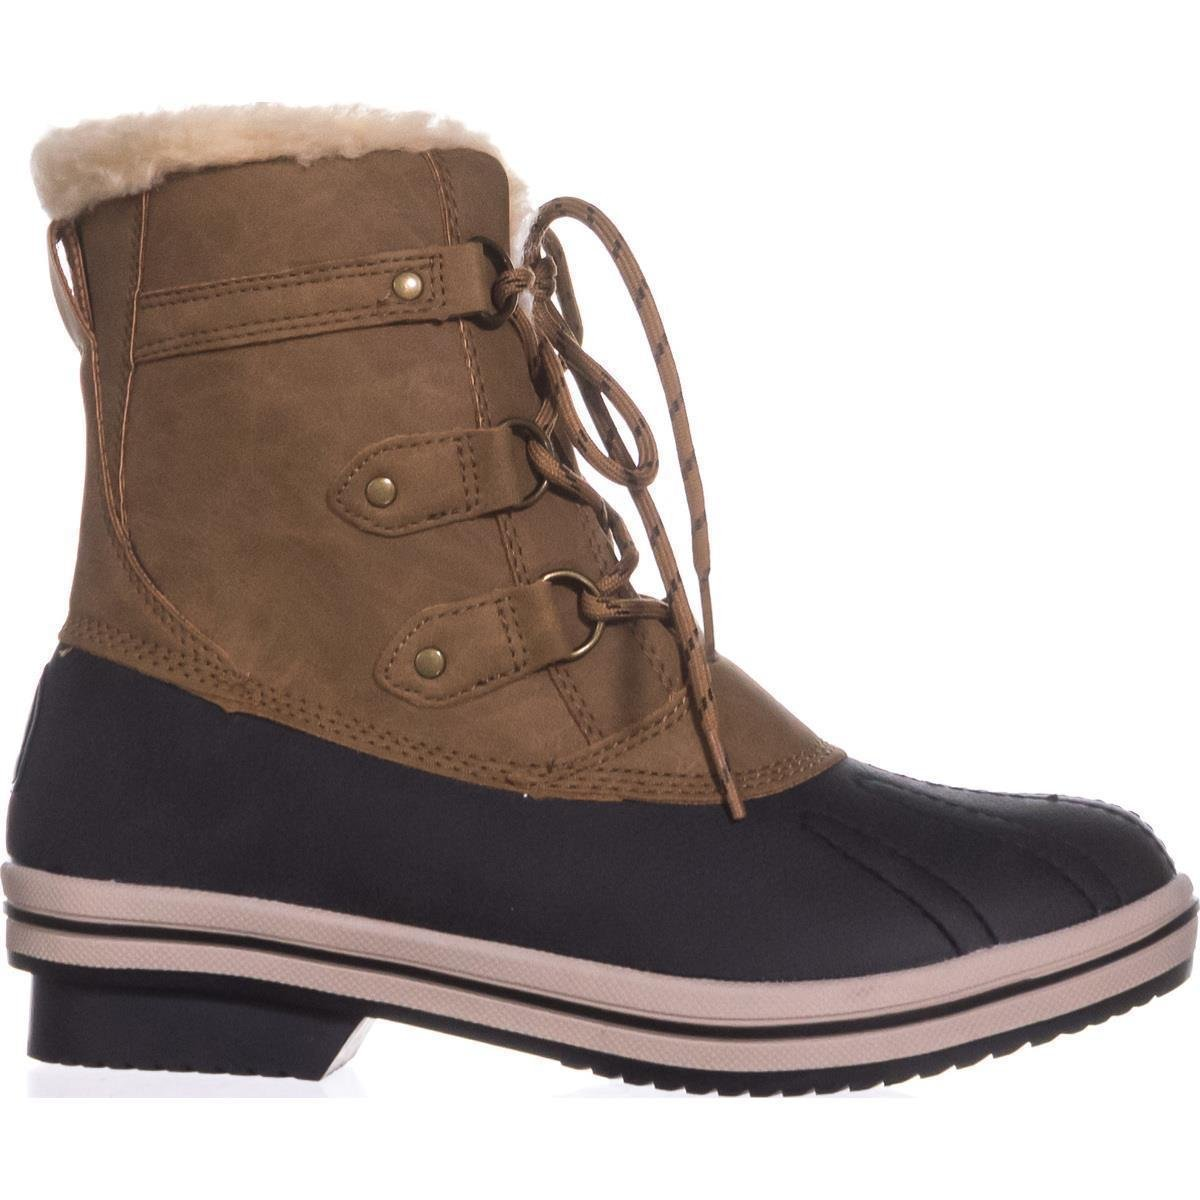 Pawz Womens Gina Faux Leather Cold Weather Winter Boots Brown 6 Medium B,M